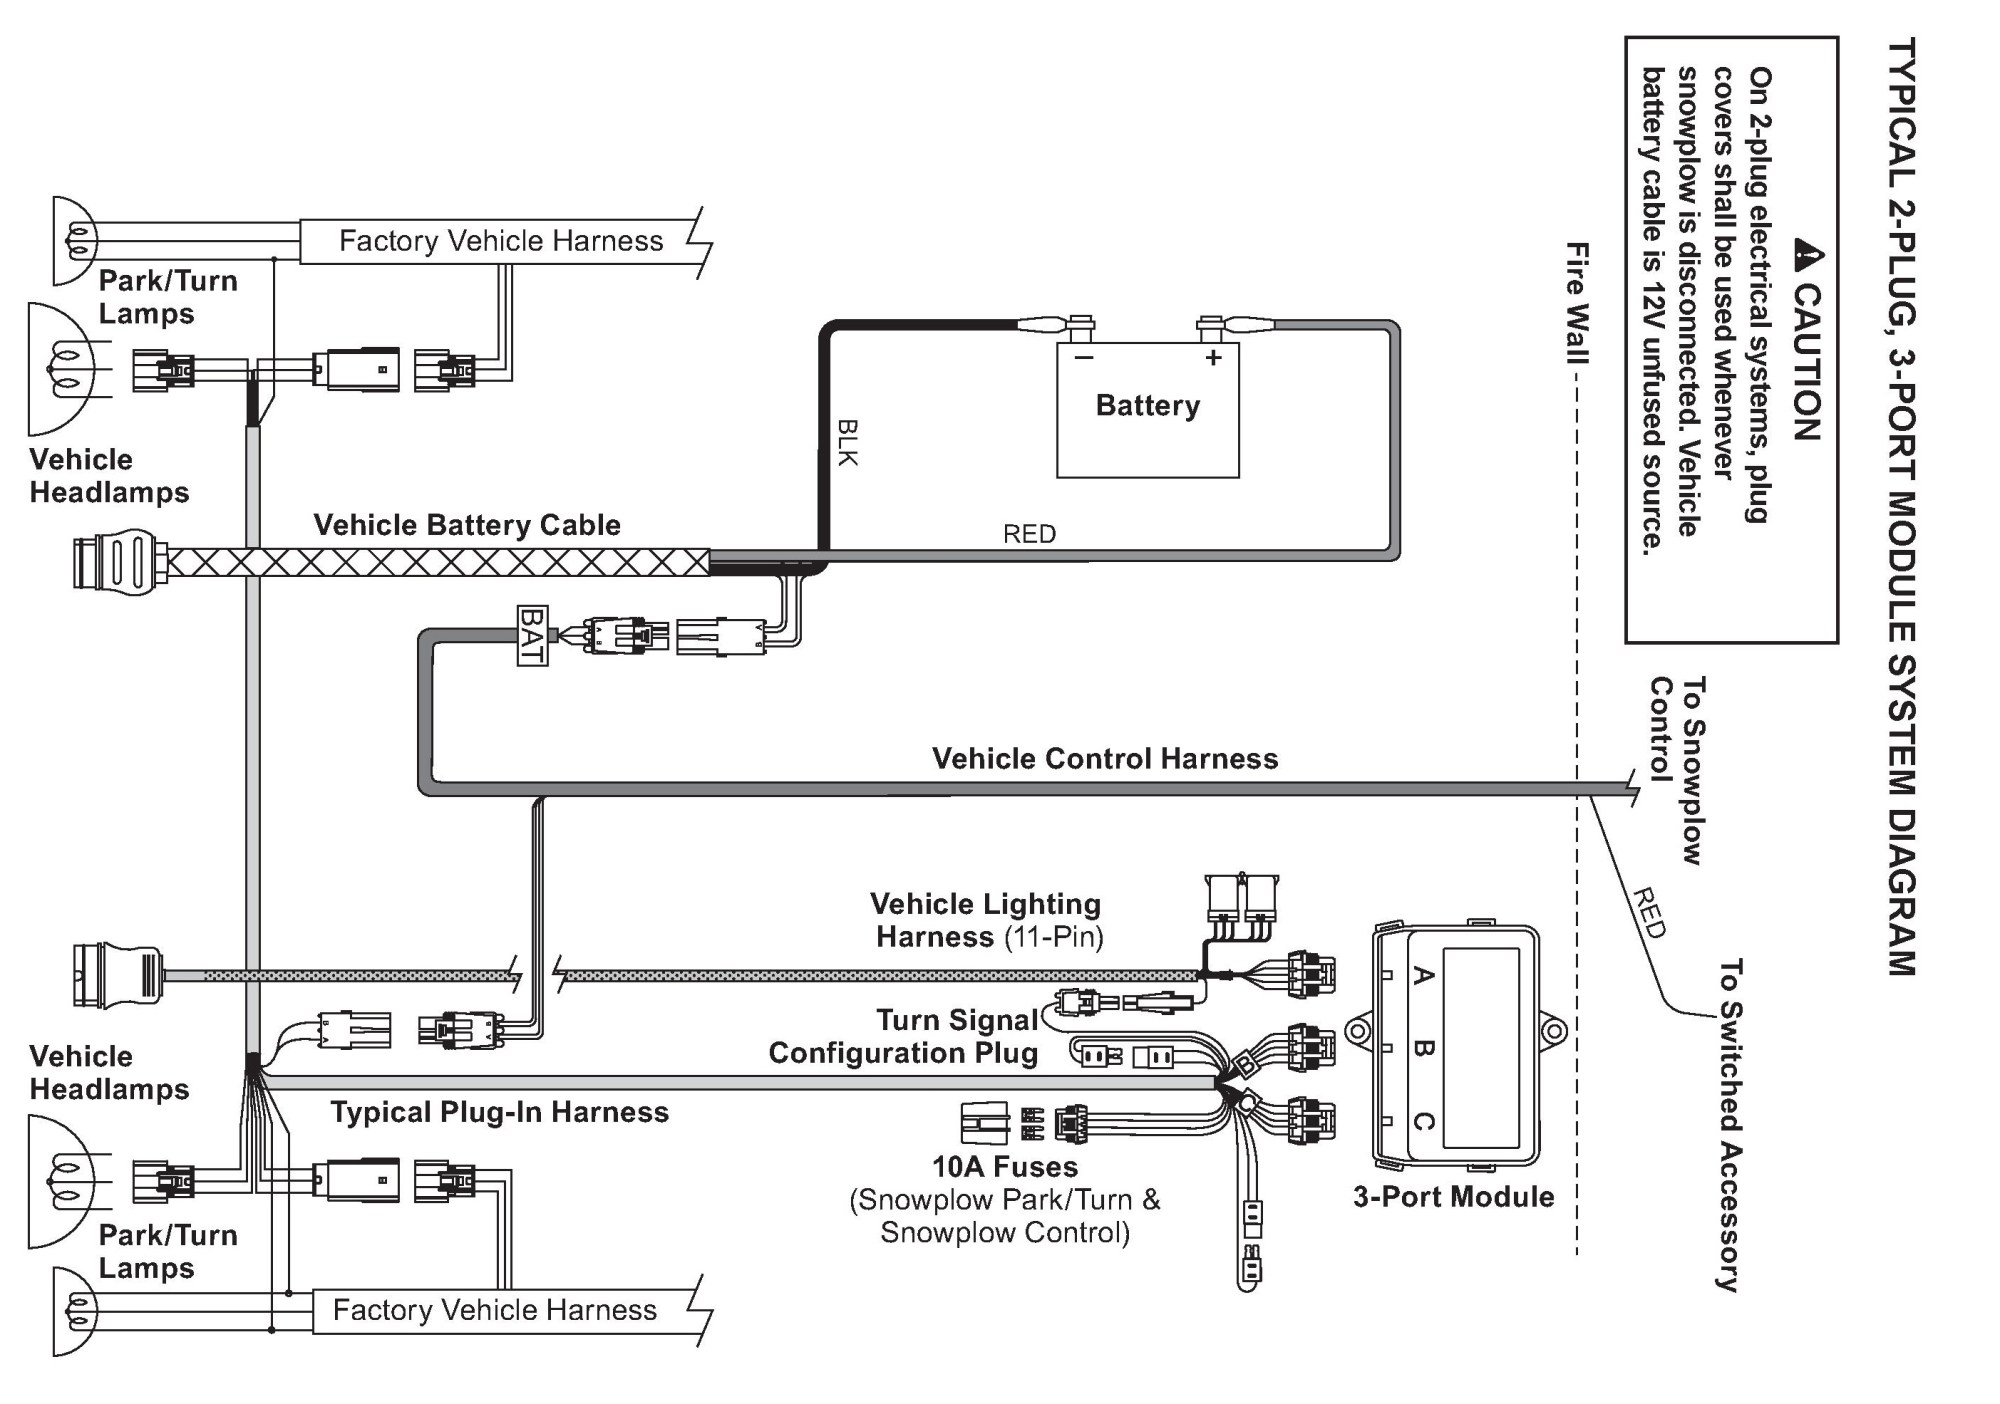 hight resolution of wiring 2 schematics manual e bookwiring 2 12v schematics wiring diagram for you